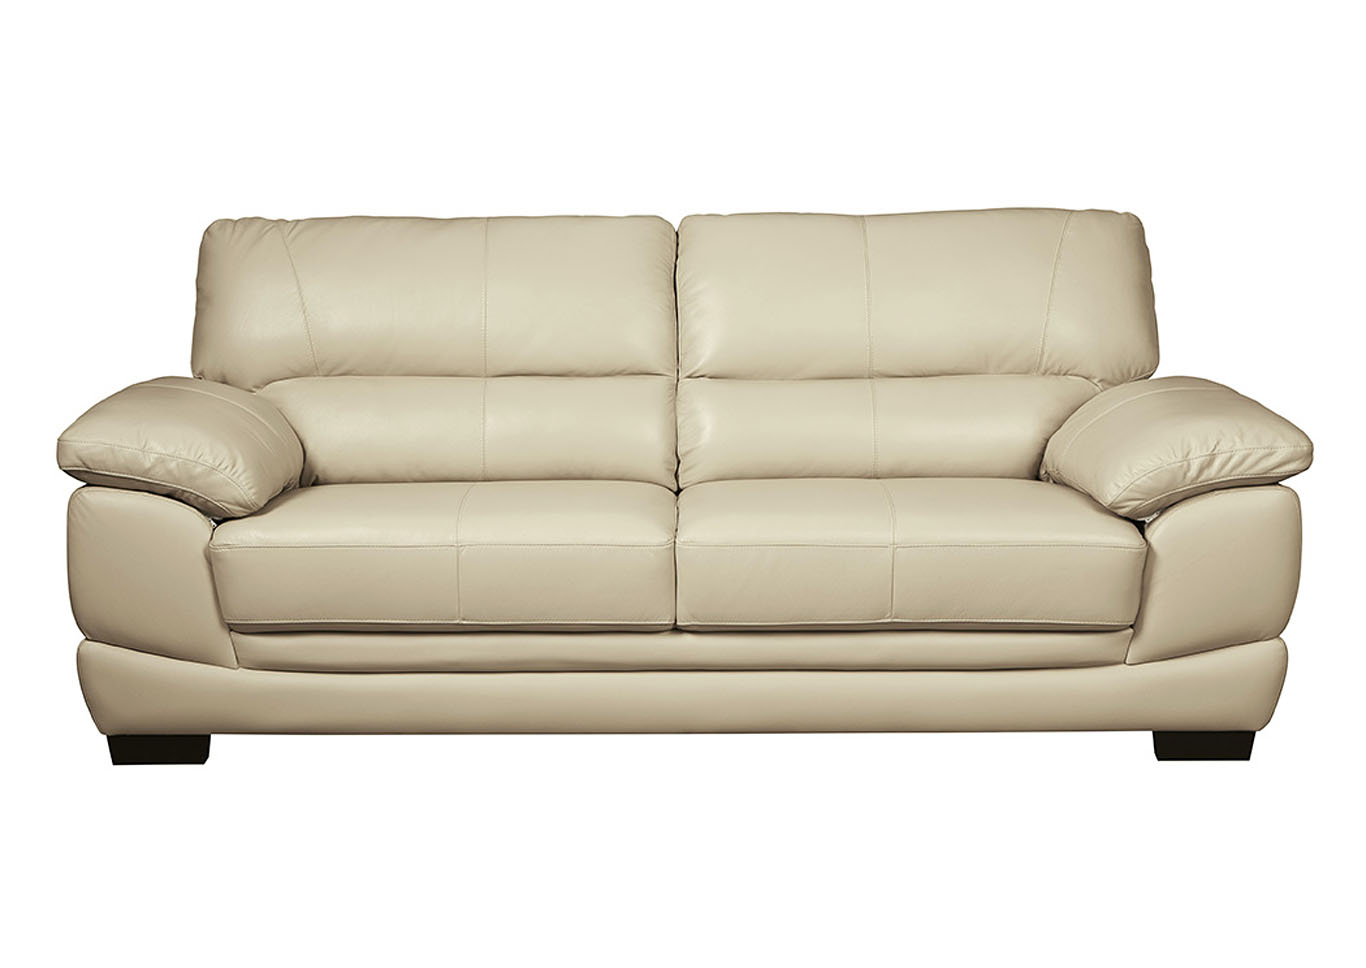 Fontenot Cream Sofa,Signature Design By Ashley